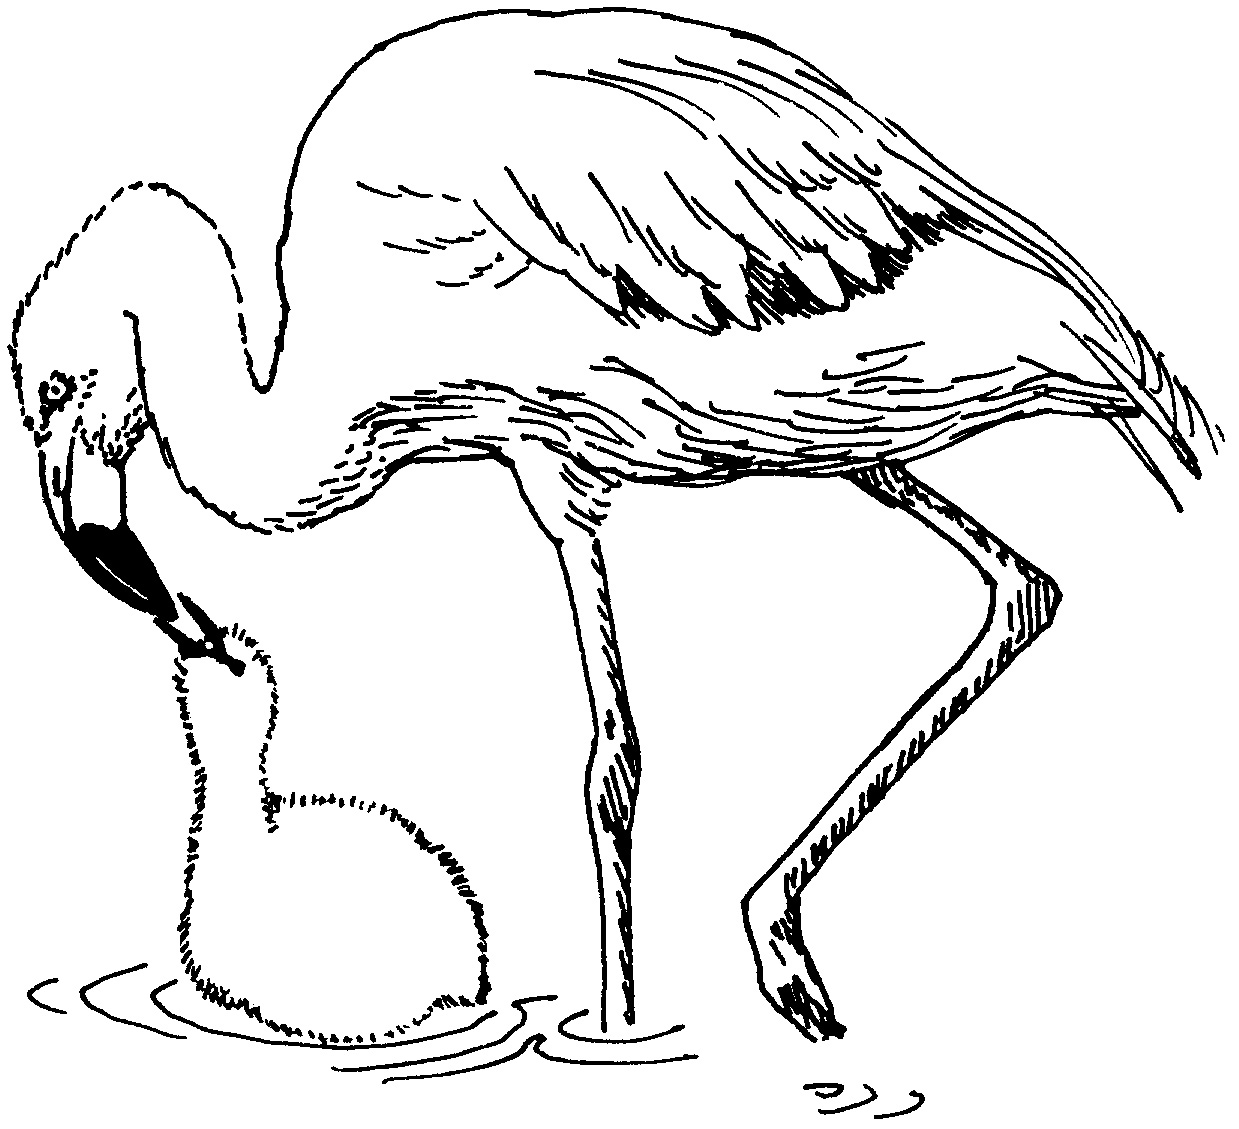 Flamingo coloring pages to download